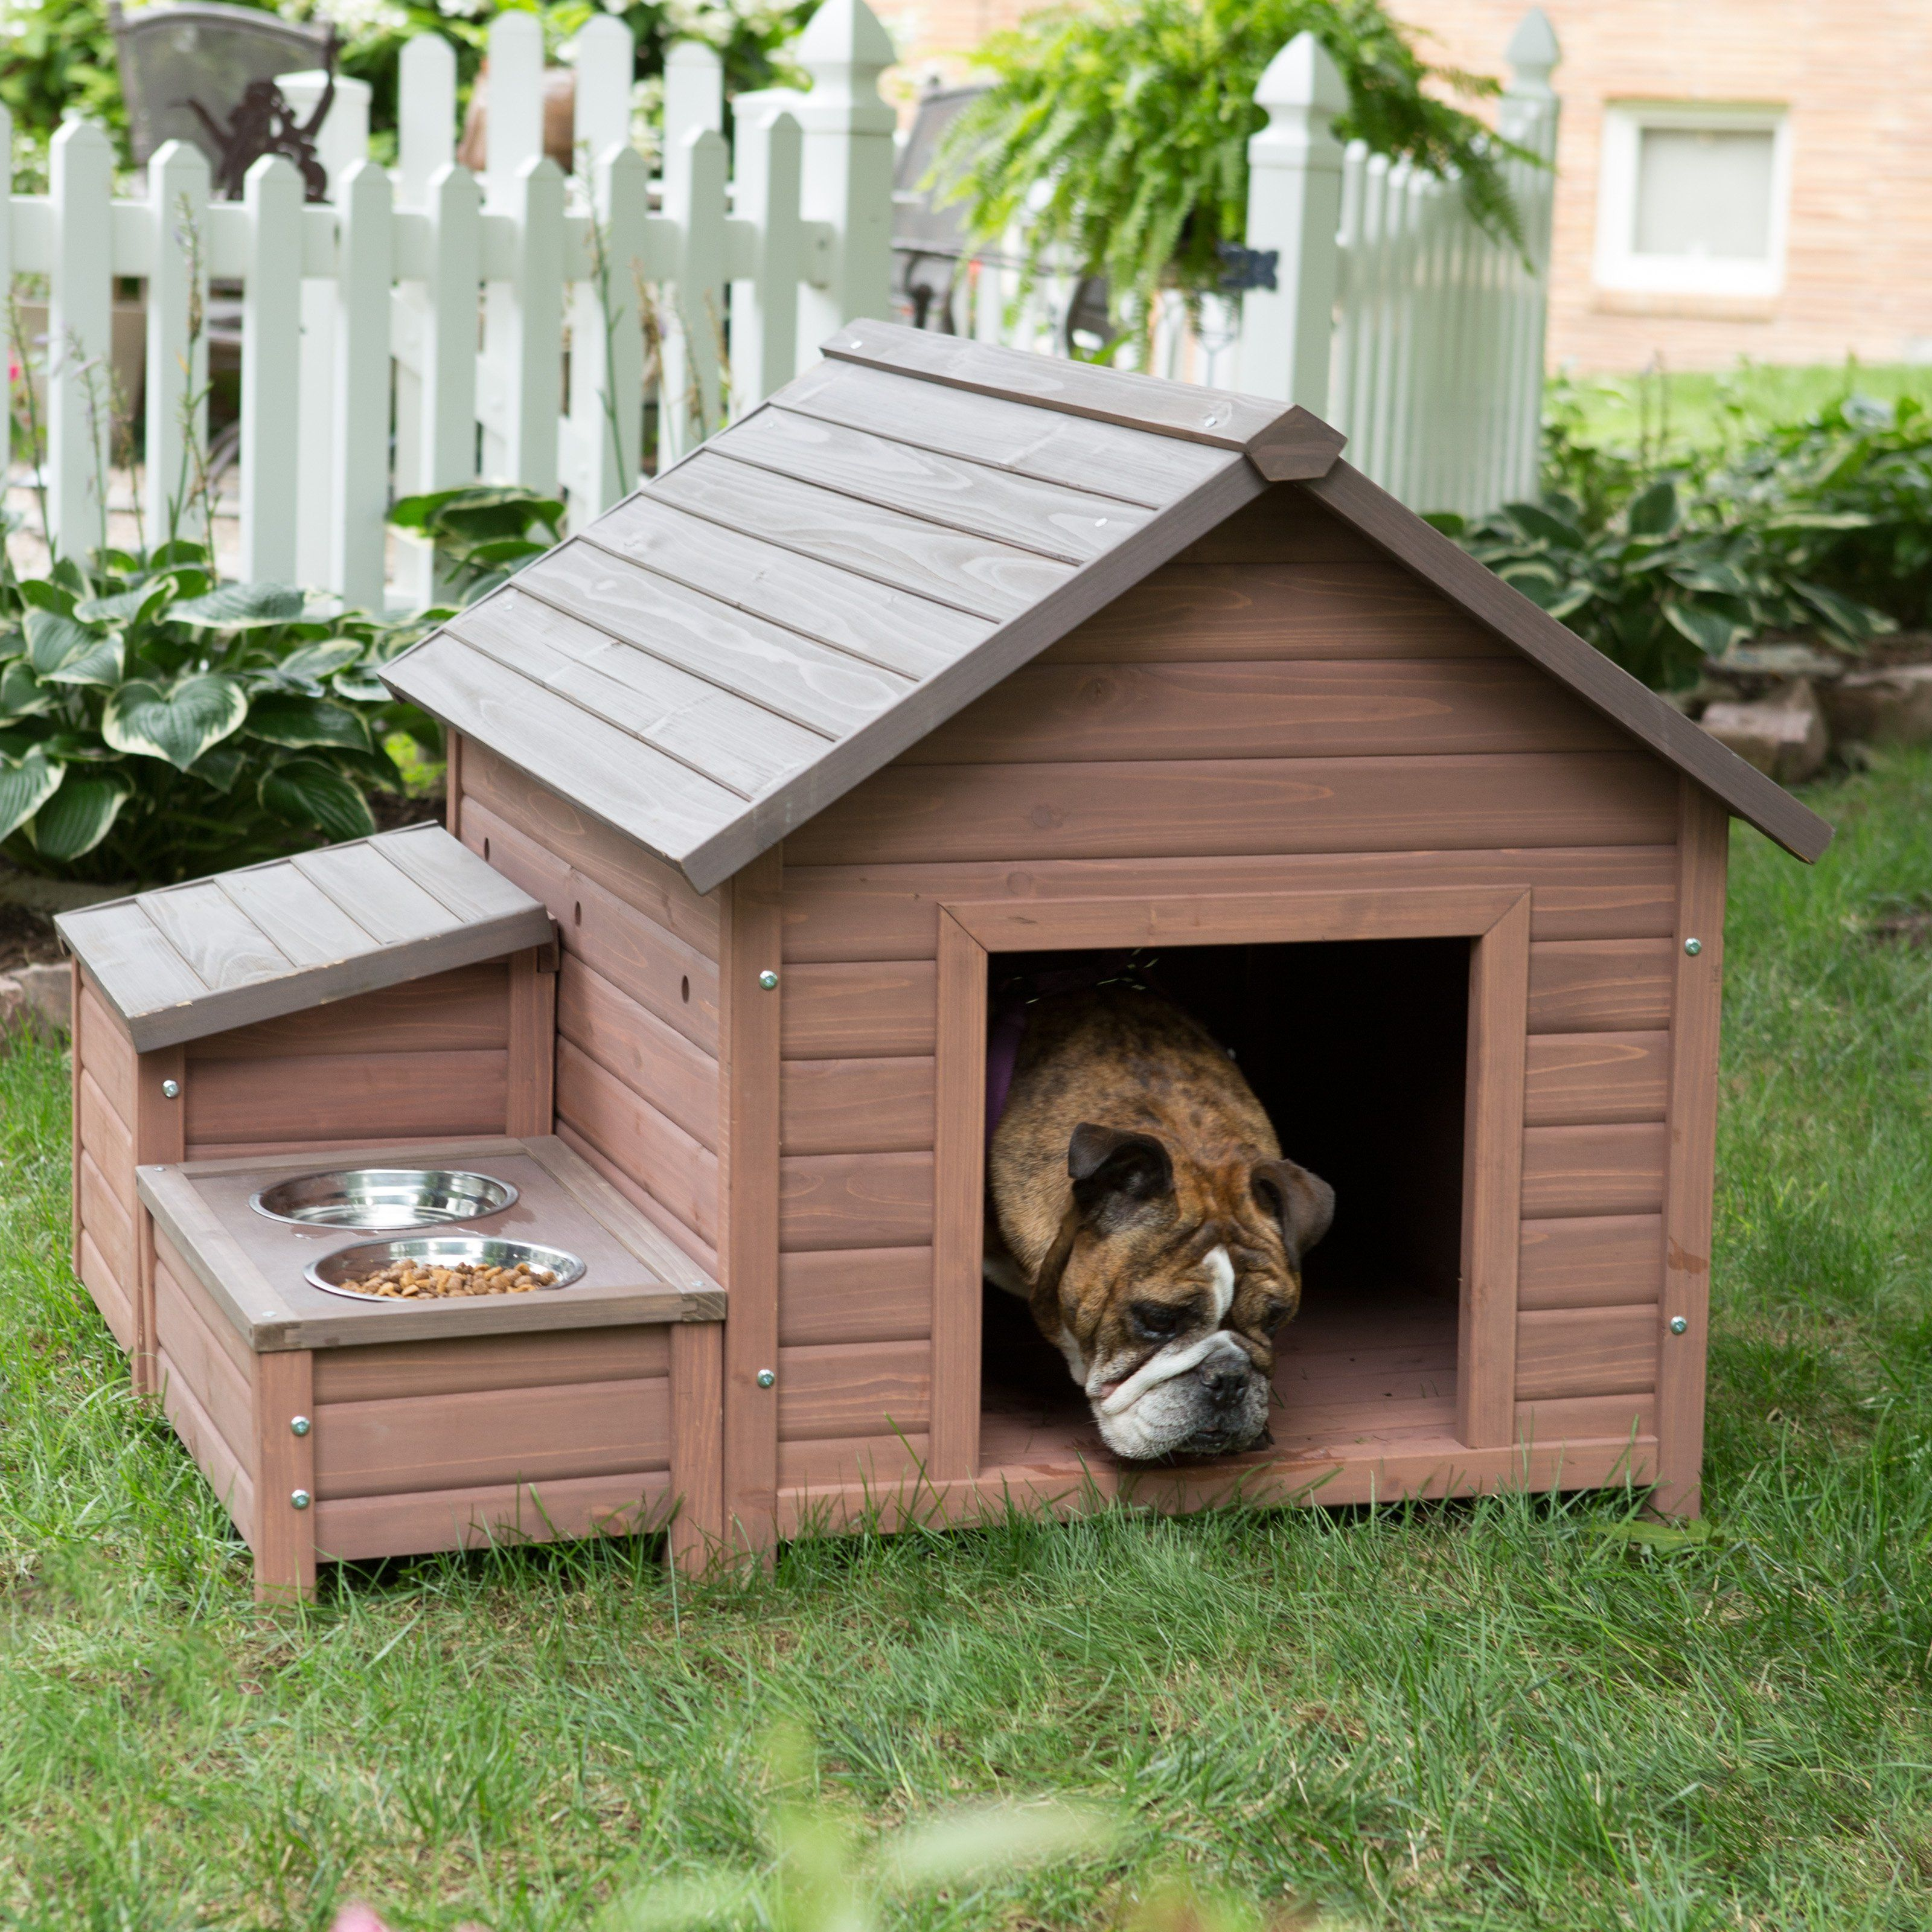 15 Best Fancy Dog Houses - Cool Luxury Dog Houses To Buy